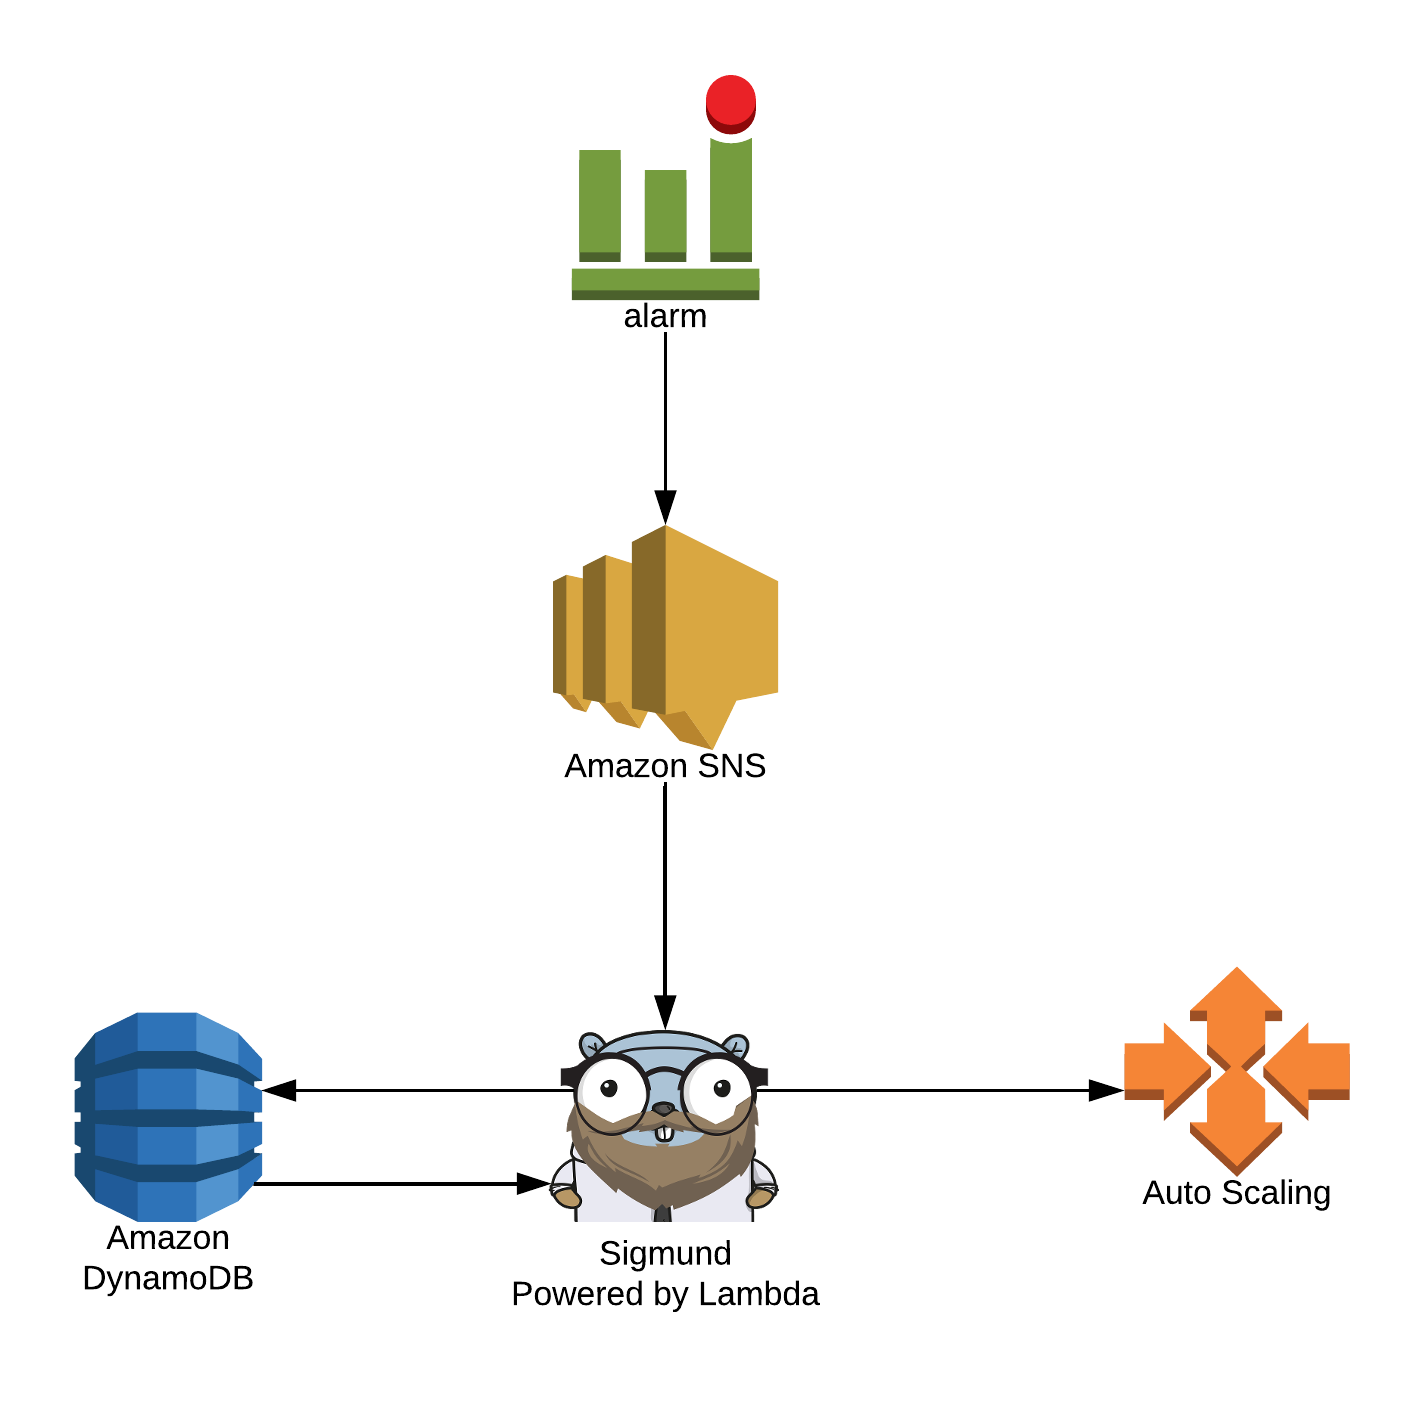 AWS Auto Scaling in with CloudWatch CPU and Memory metrics